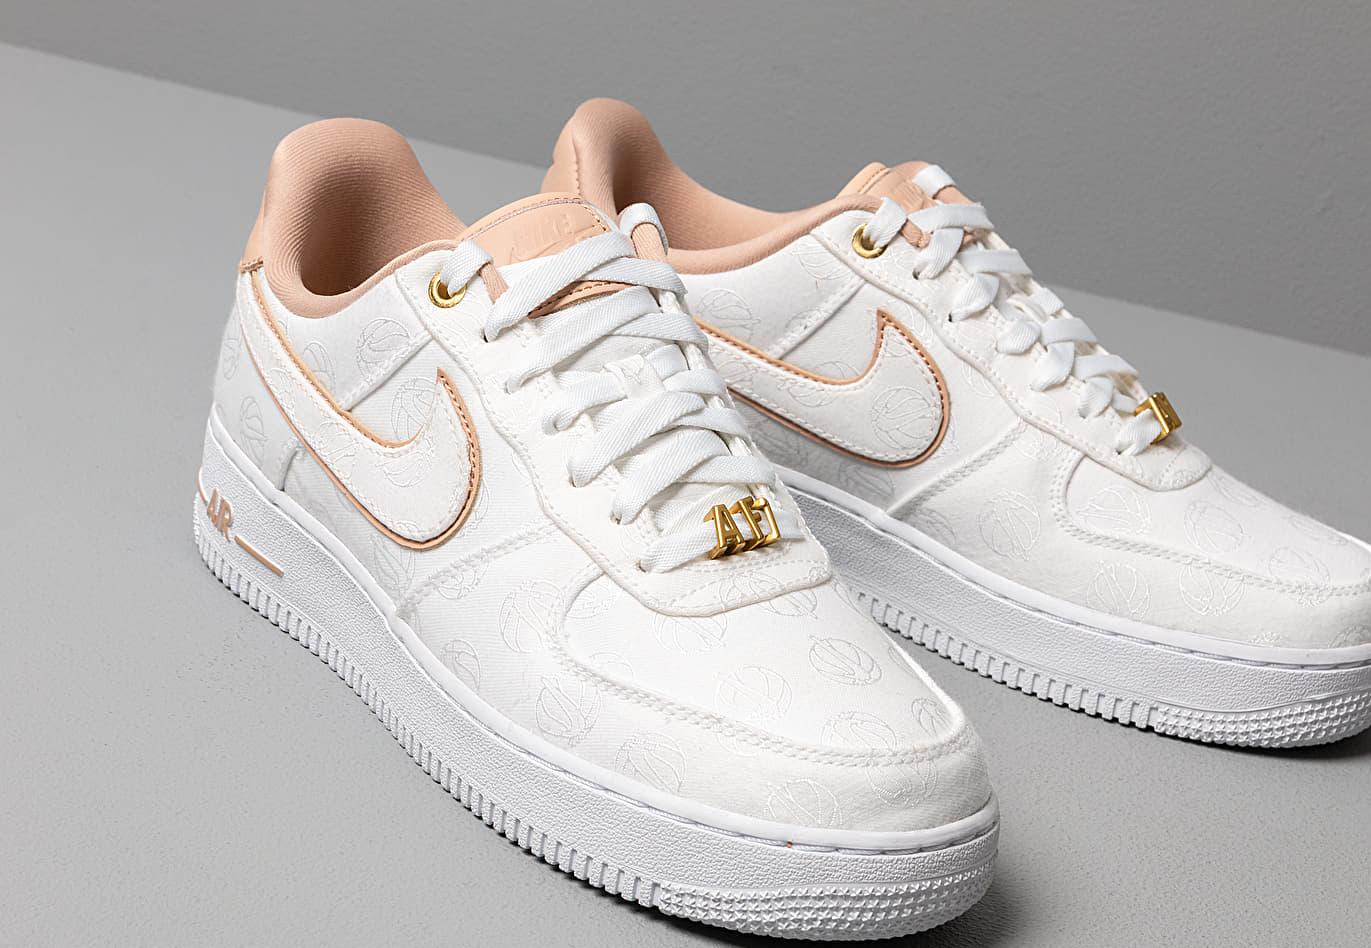 Wmns Air Force 1 '07 Lx White/ Bio Beige-white-metallic Gold